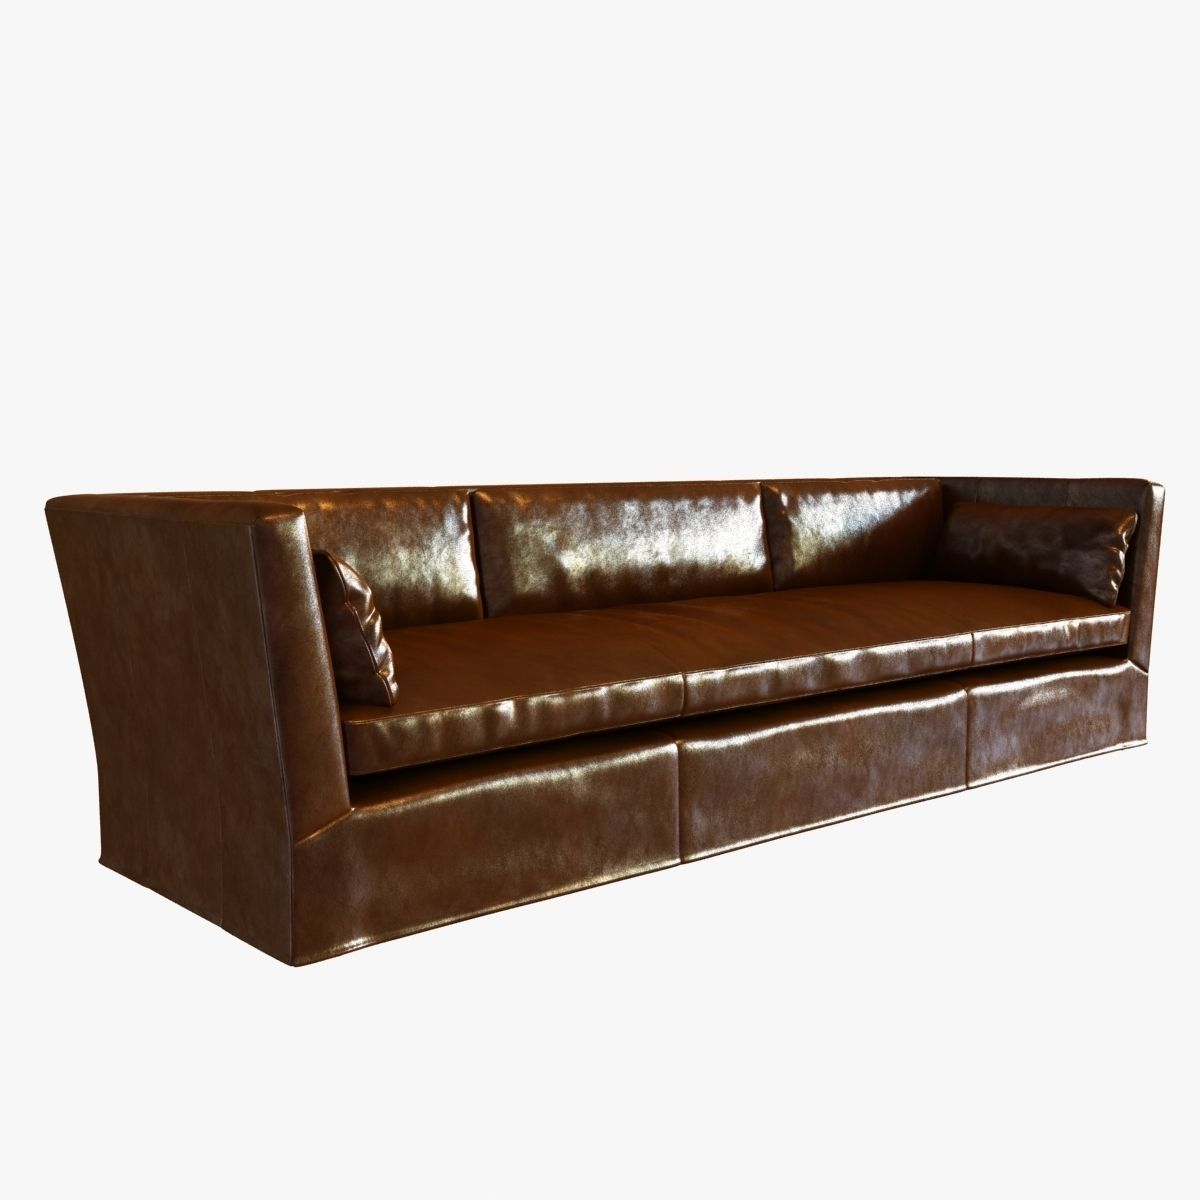 belgian shelter arm sofa charlotte black faux leather convertible sectional bed restoration hardware 3d